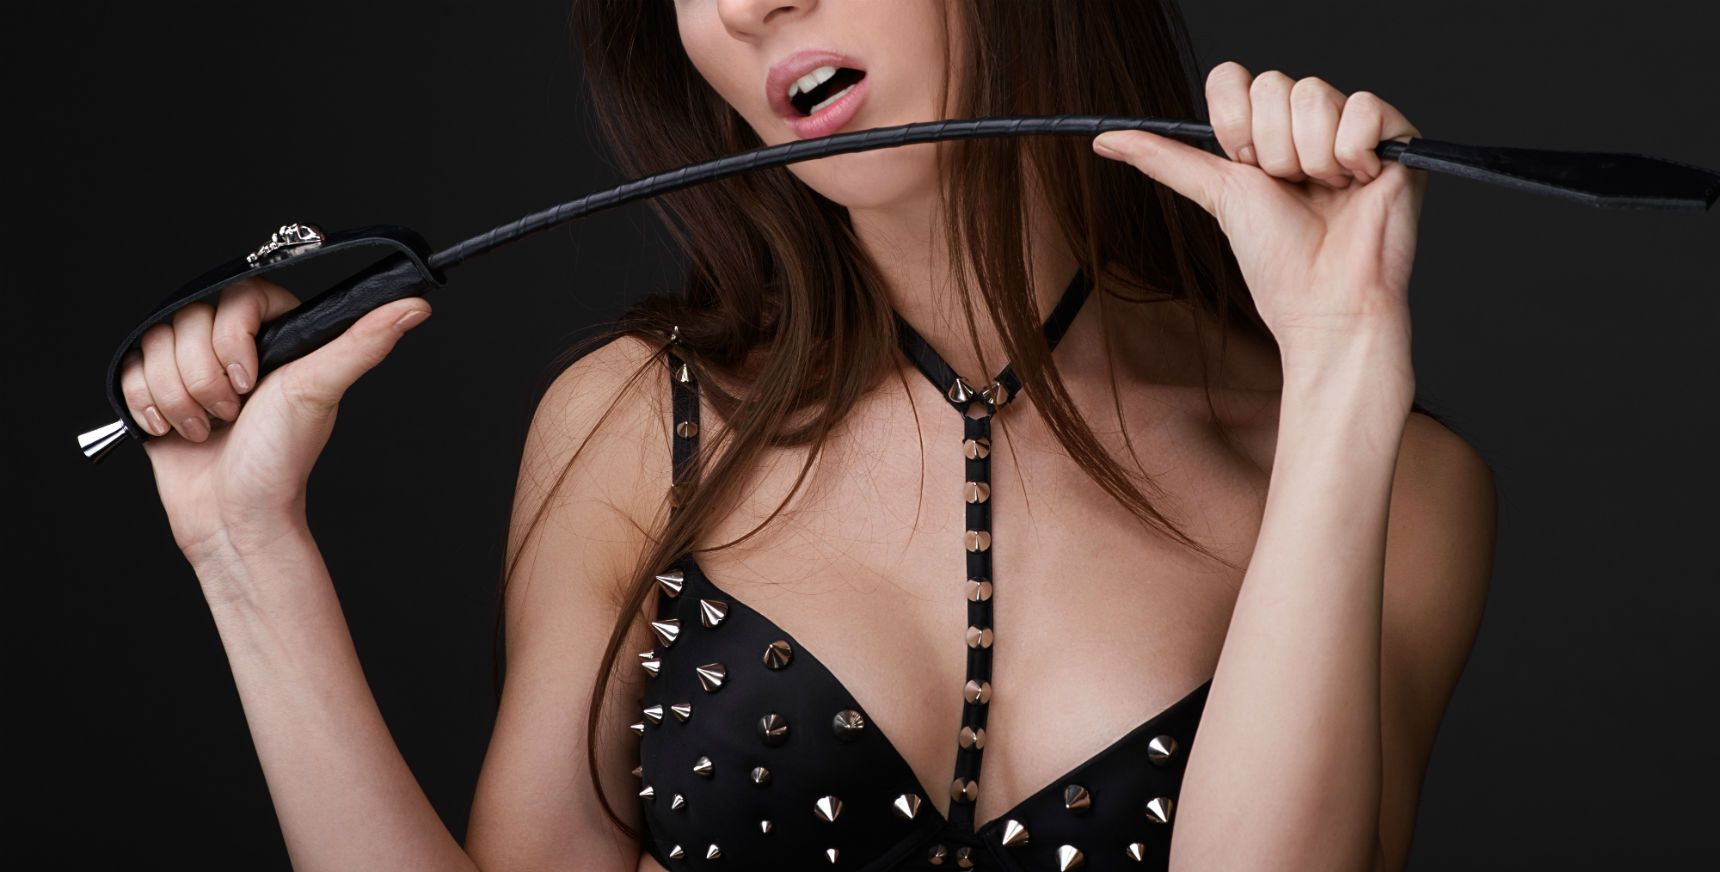 10 Adult Toys That Shockingly Resemble Torture Devices